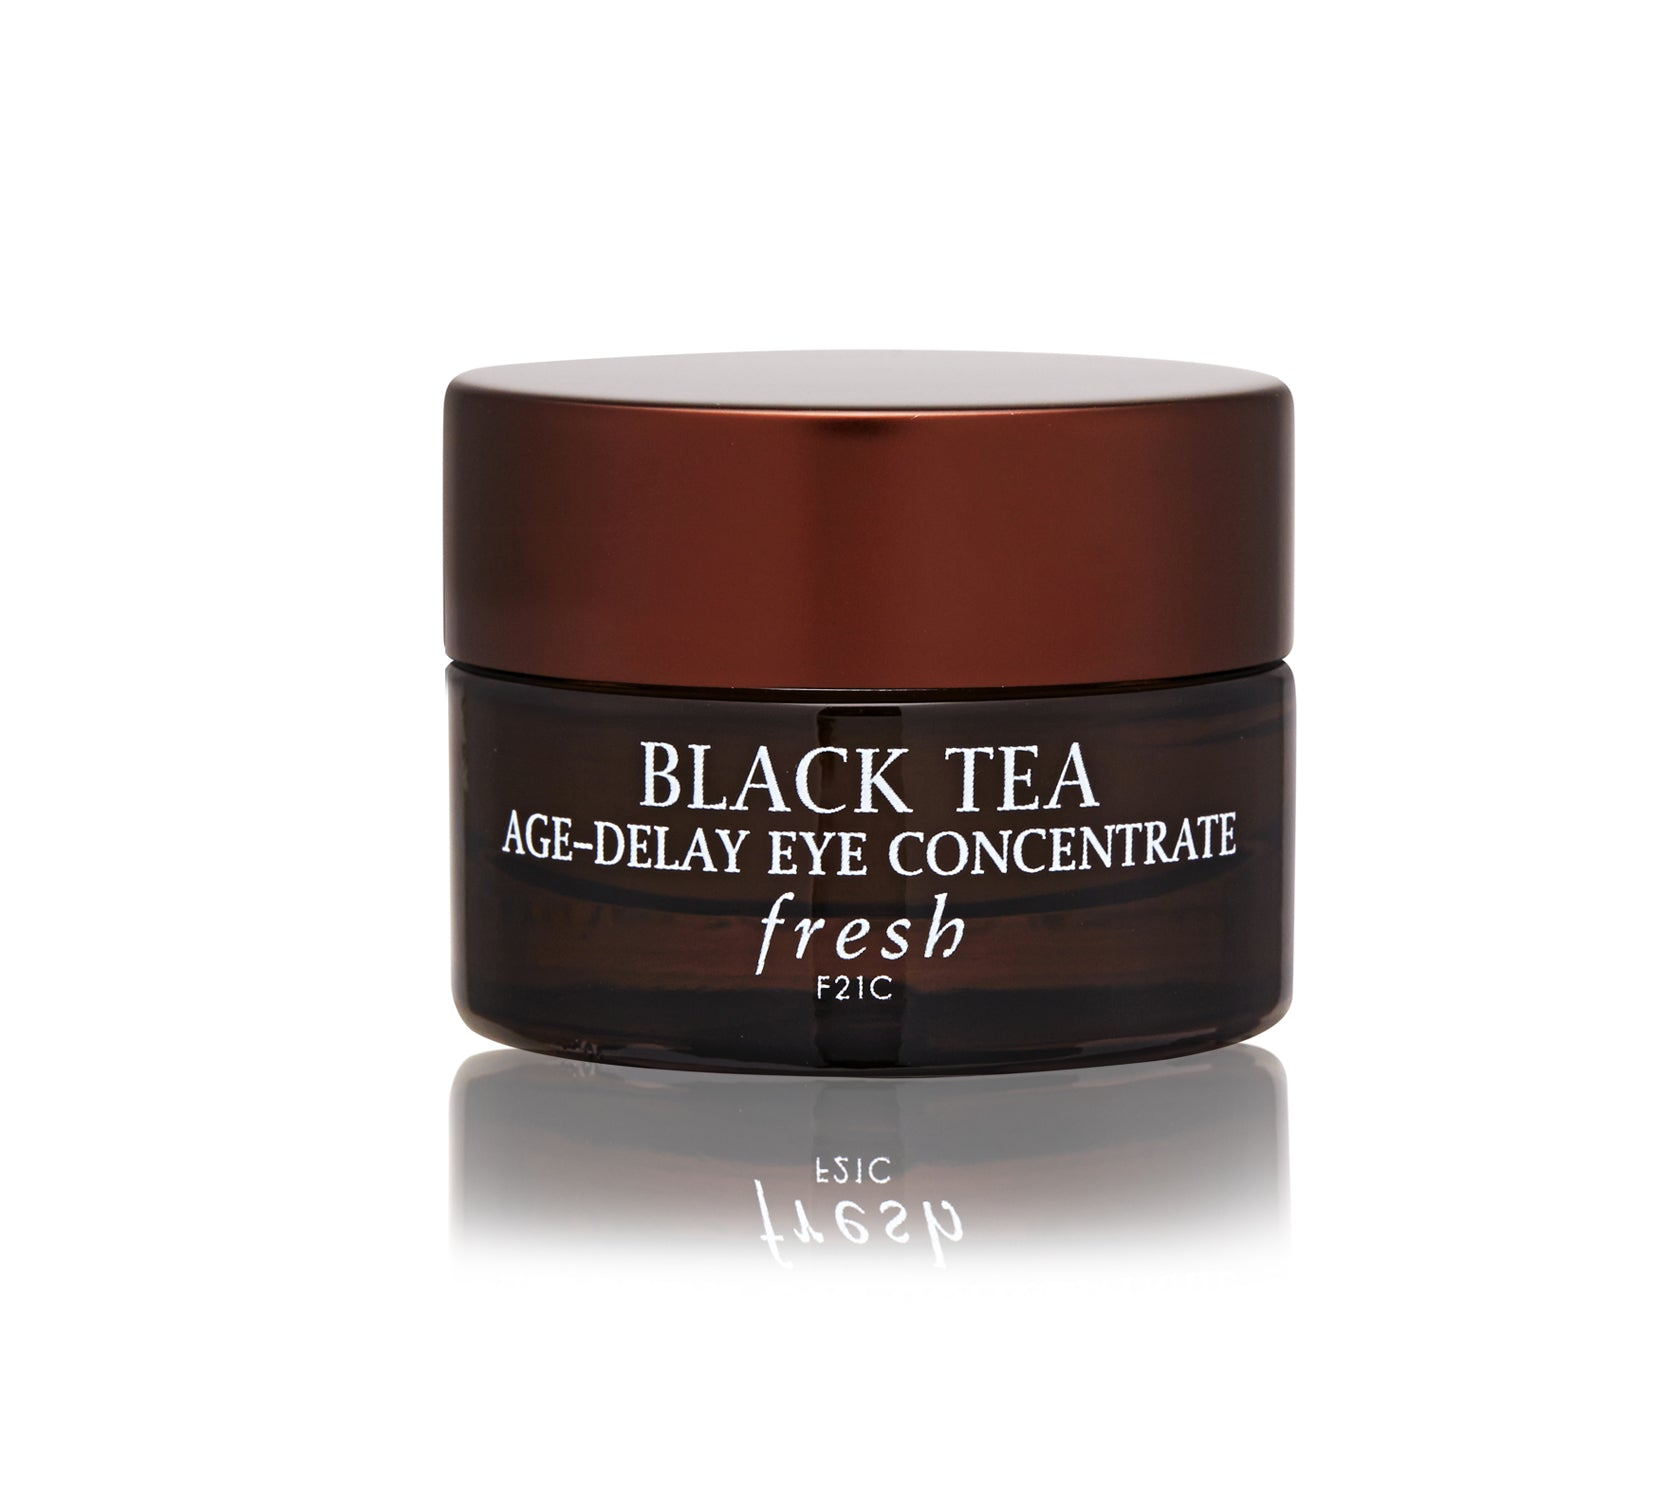 Black Tea Age-Delay Eye Concentrate